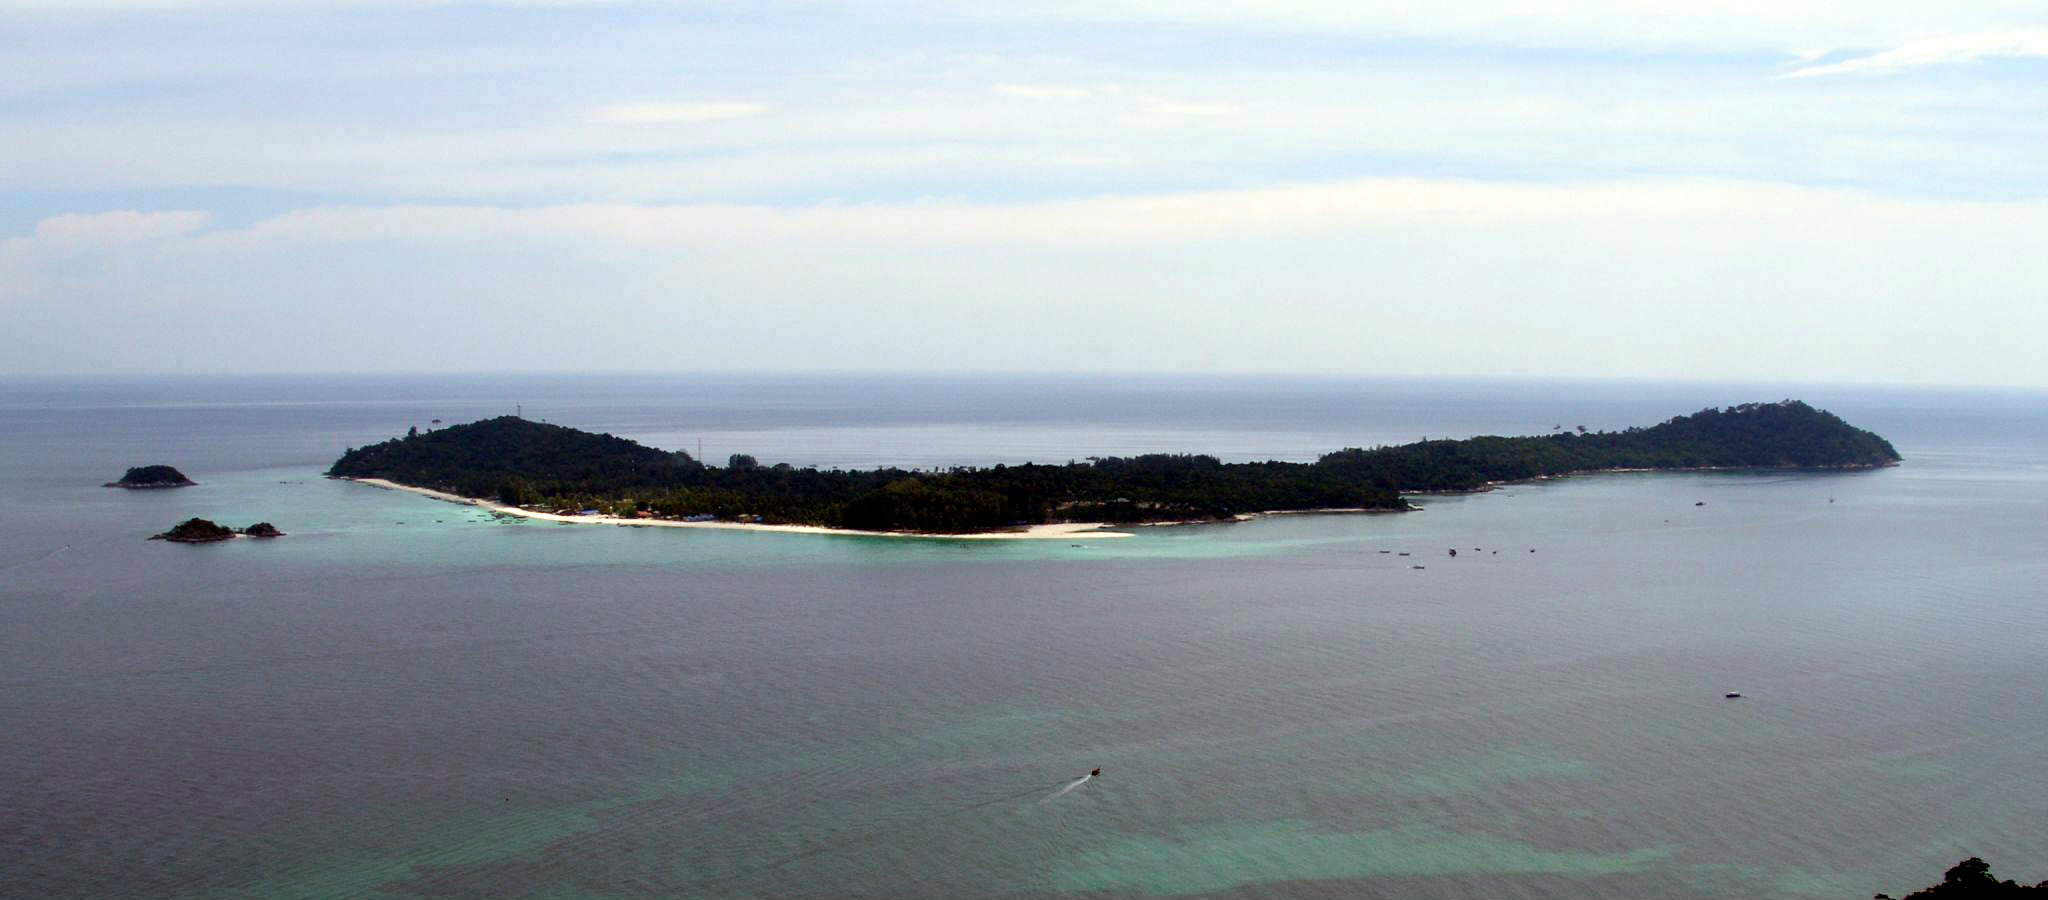 Koh Lipe in the distance from Koh Adang in Thailand